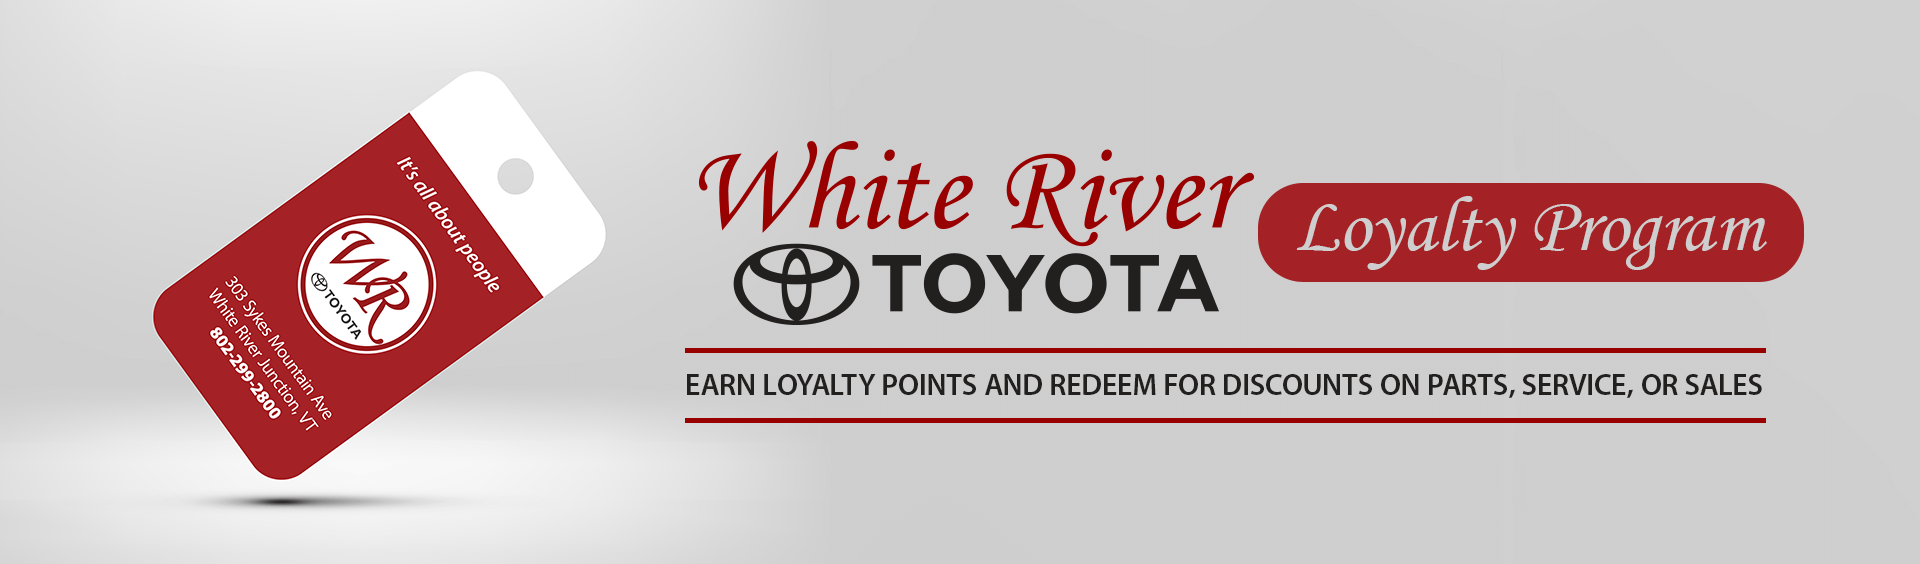 White River Toyota Loyalty Rewards Program